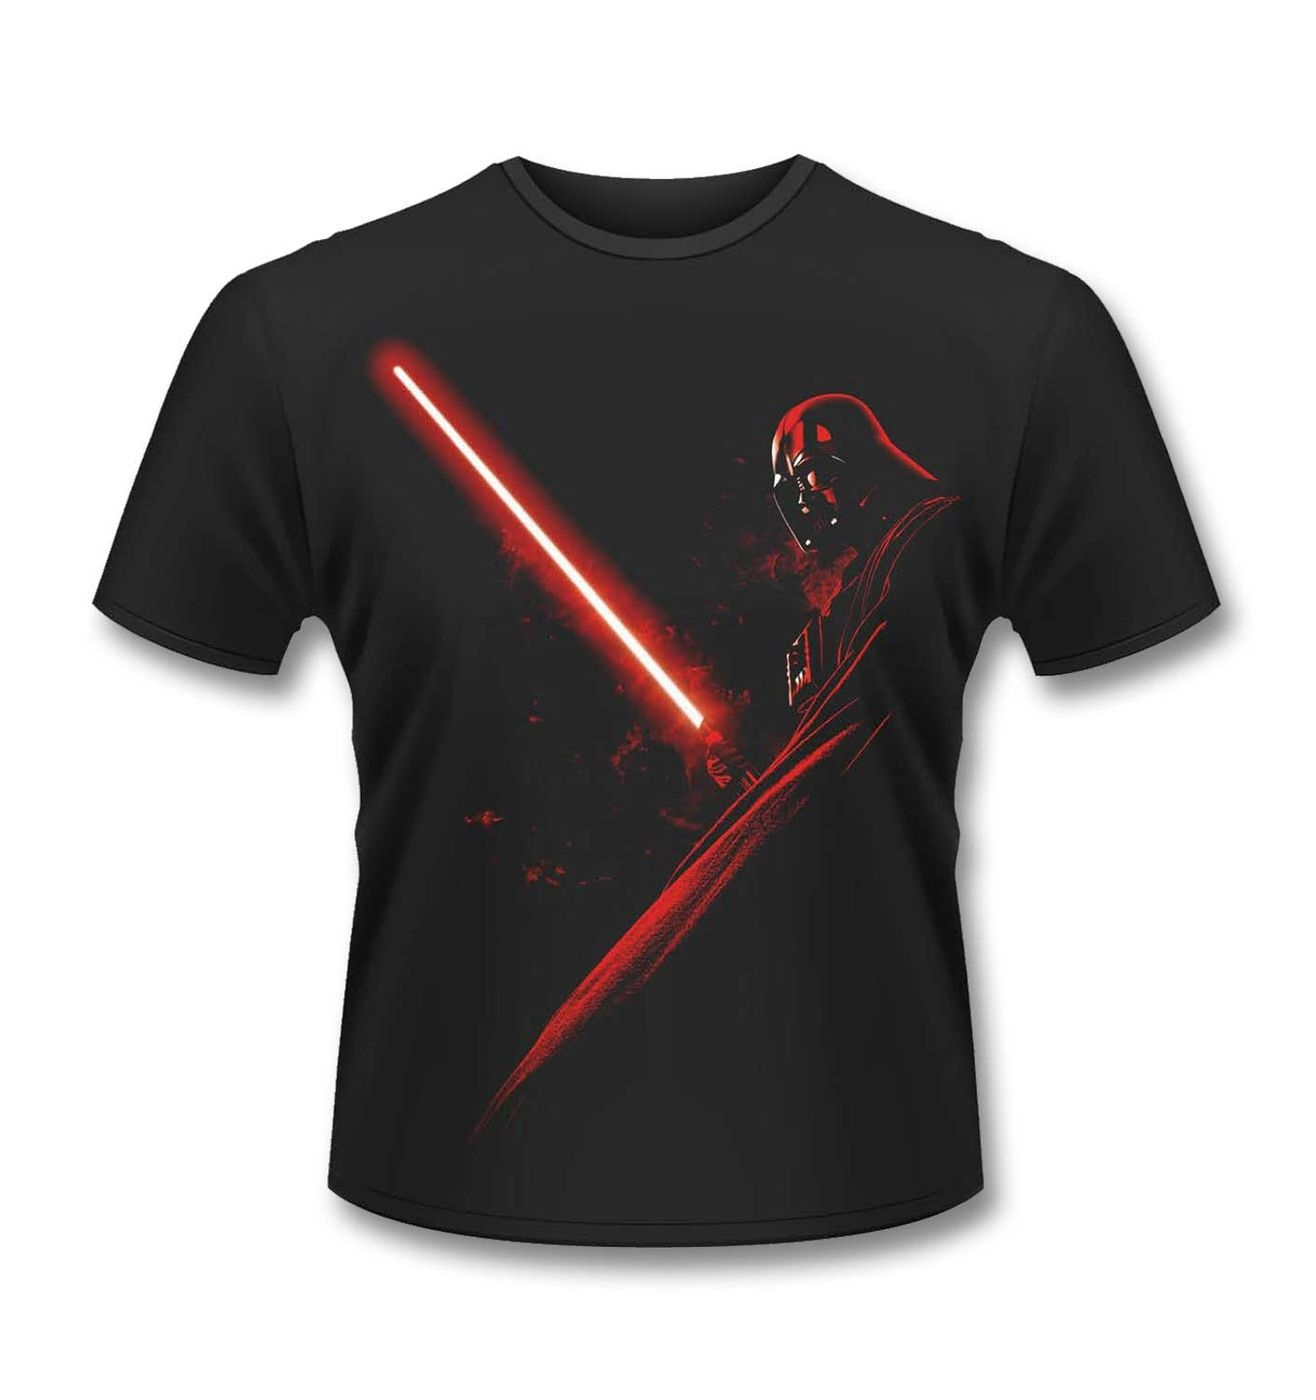 You searched for: darth vader t shirt! Etsy is the home to thousands of handmade, vintage, and one-of-a-kind products and gifts related to your search. No matter what you're looking for or where you are in the world, our global marketplace of sellers can help you find unique and affordable options. Let's get started!